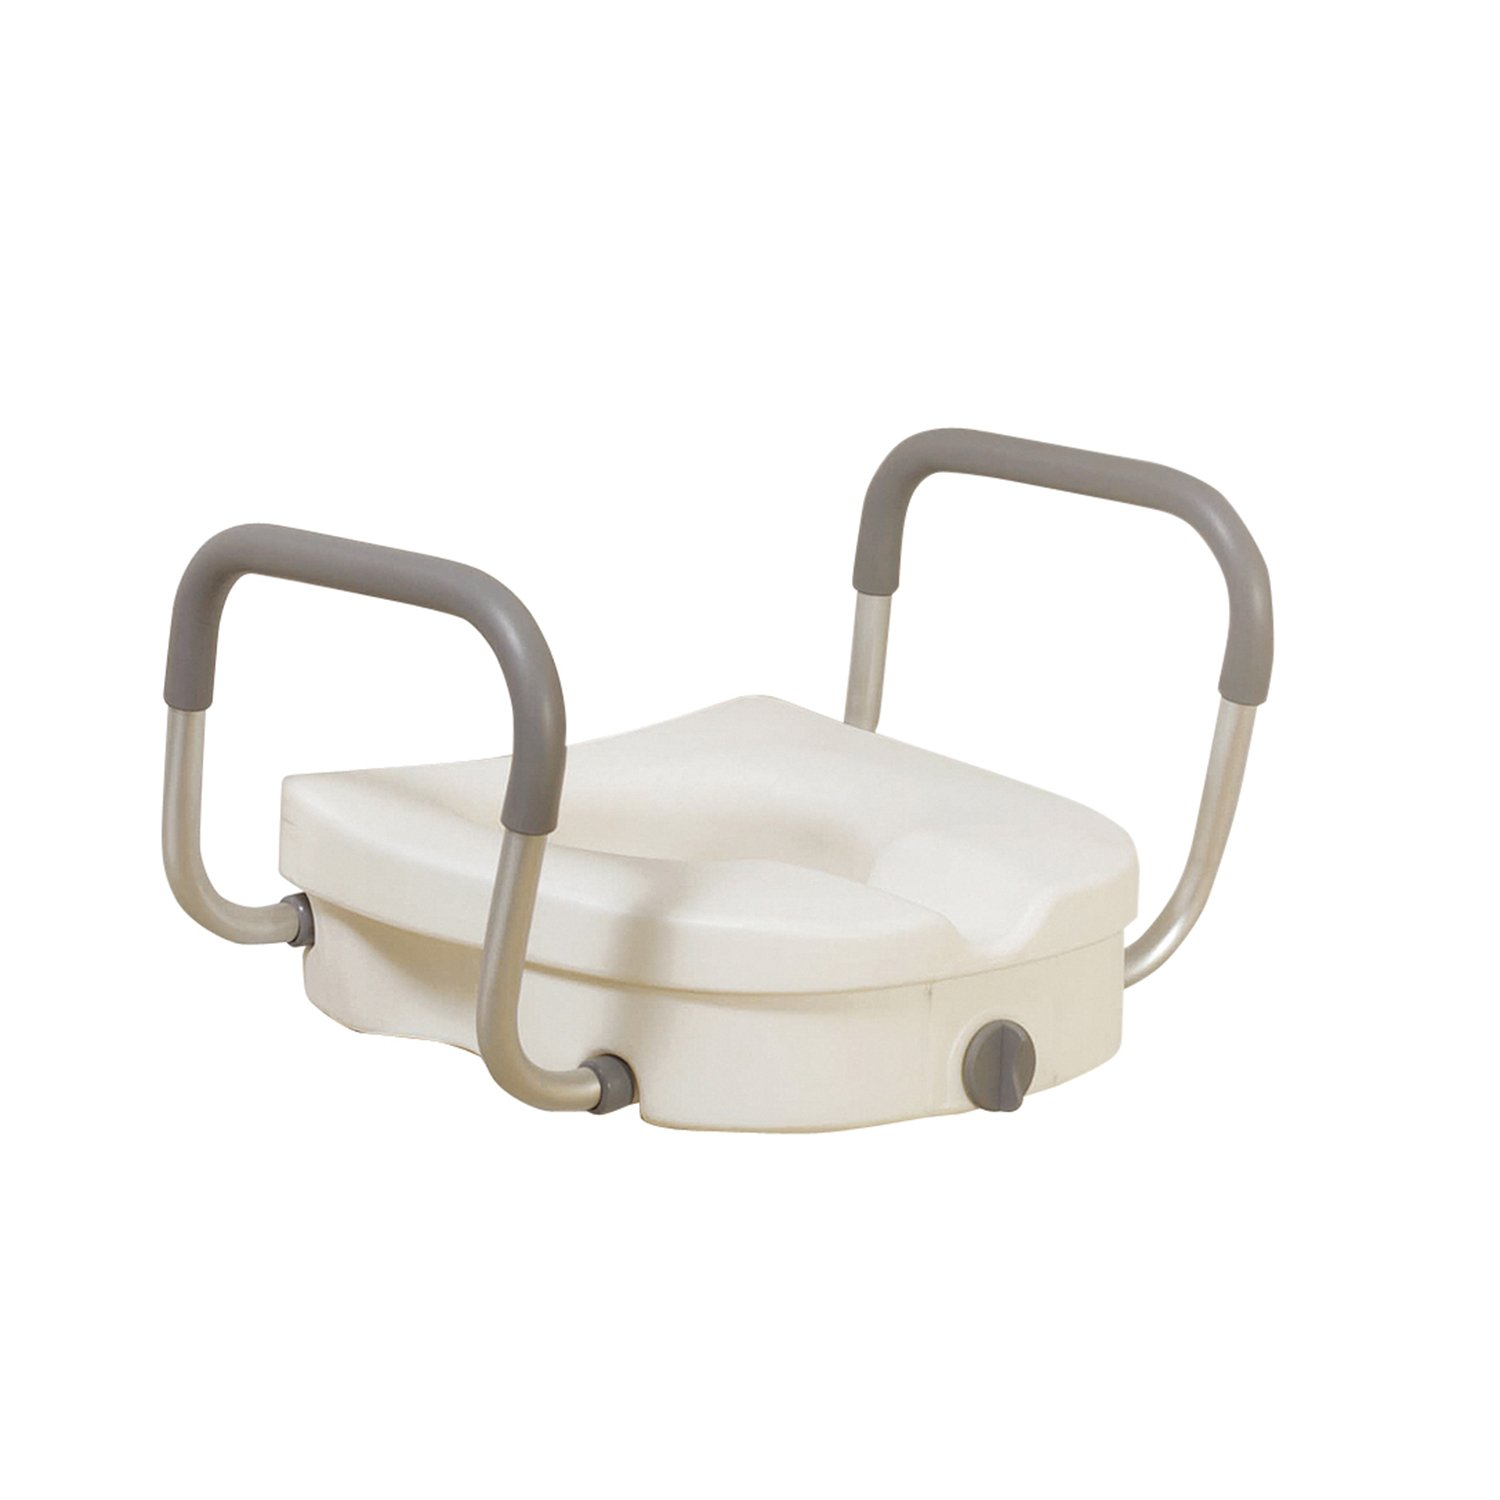 The Best 2 Inch Toilet Seat Risers For People On